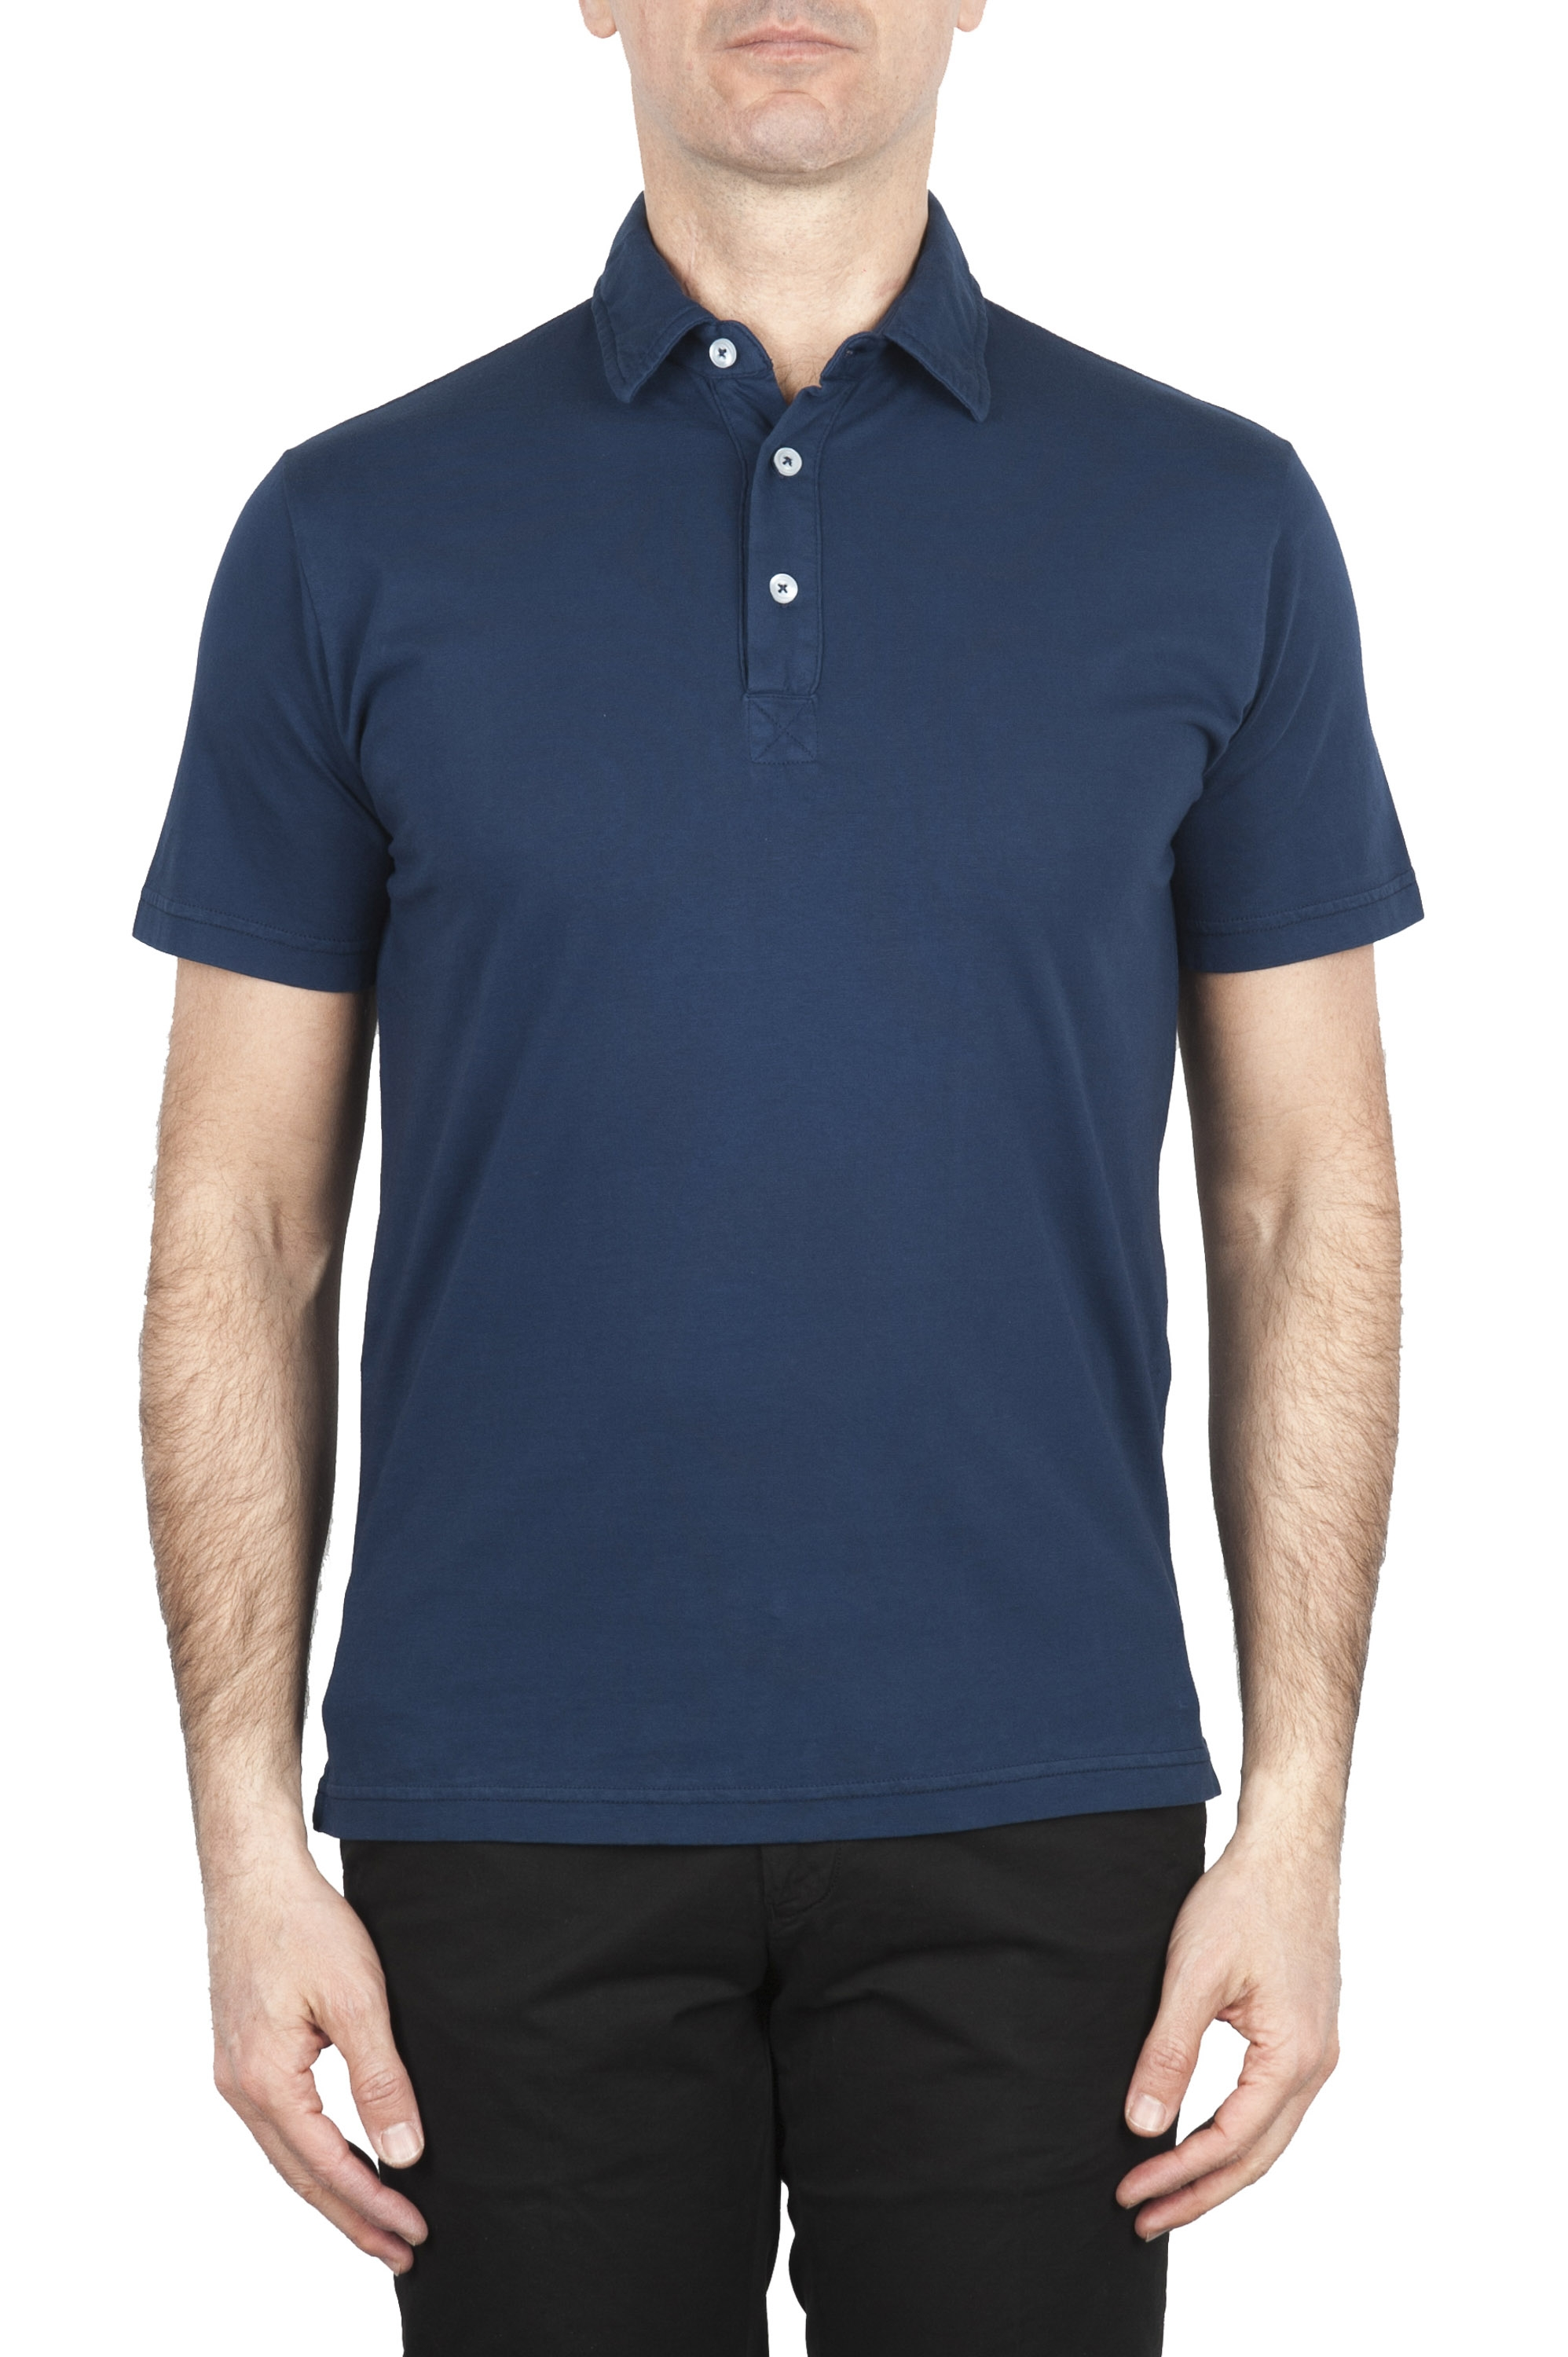 SBU 01698 Classic short sleeve navy blue cotton jersey polo shirt 01